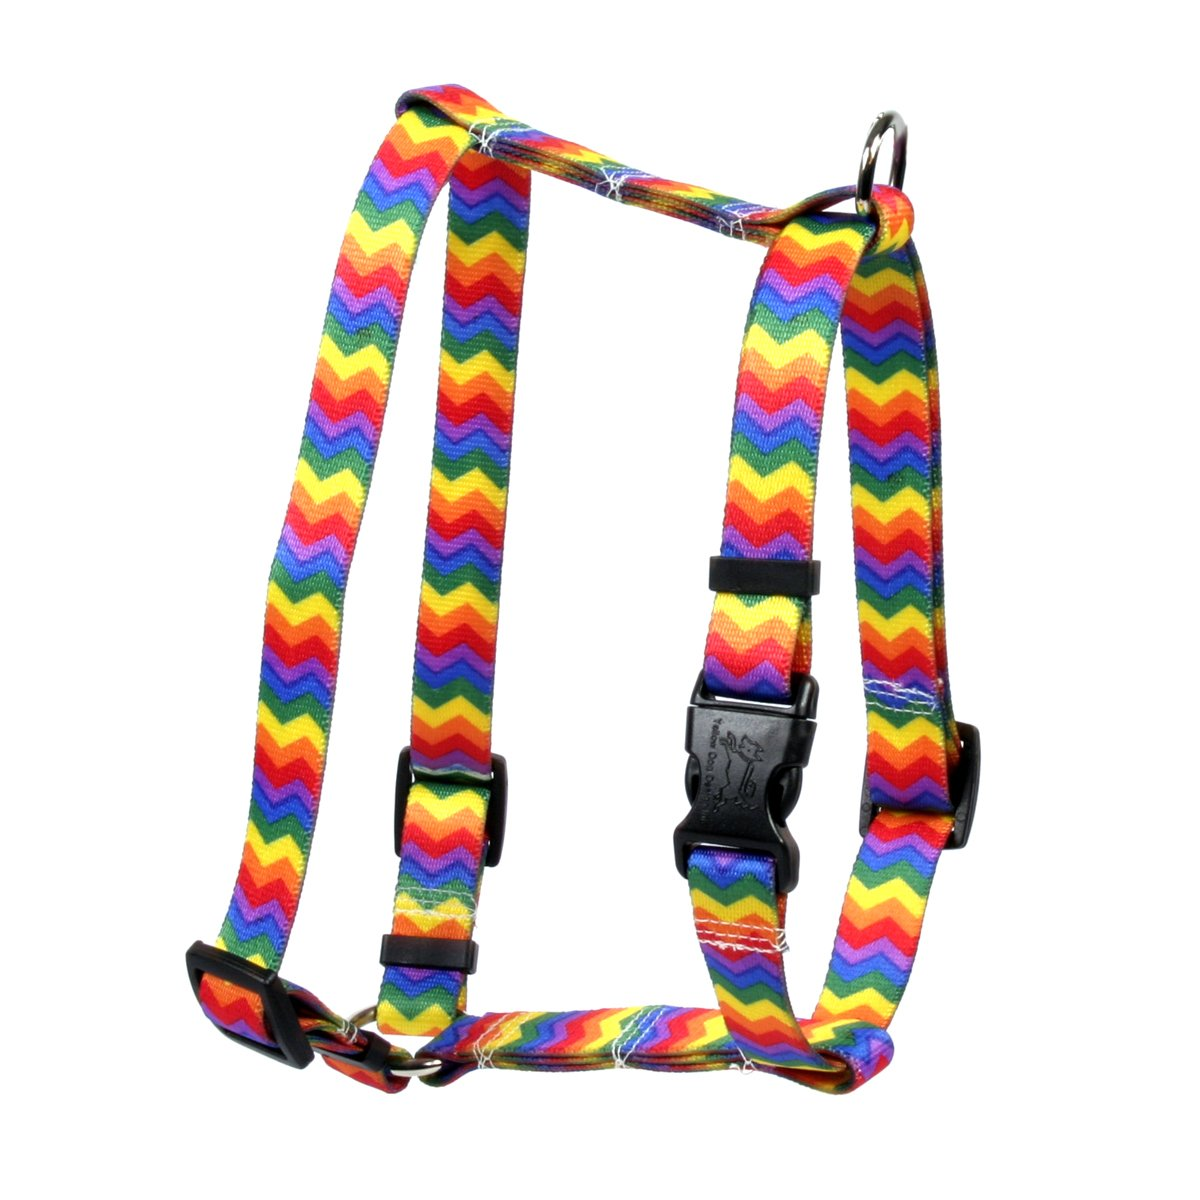 Yellow Dog Design Rainbow Chevron Roman Style H Dog Harness, X-Small-3/8 Wide and fits Chest of 8 to 14''